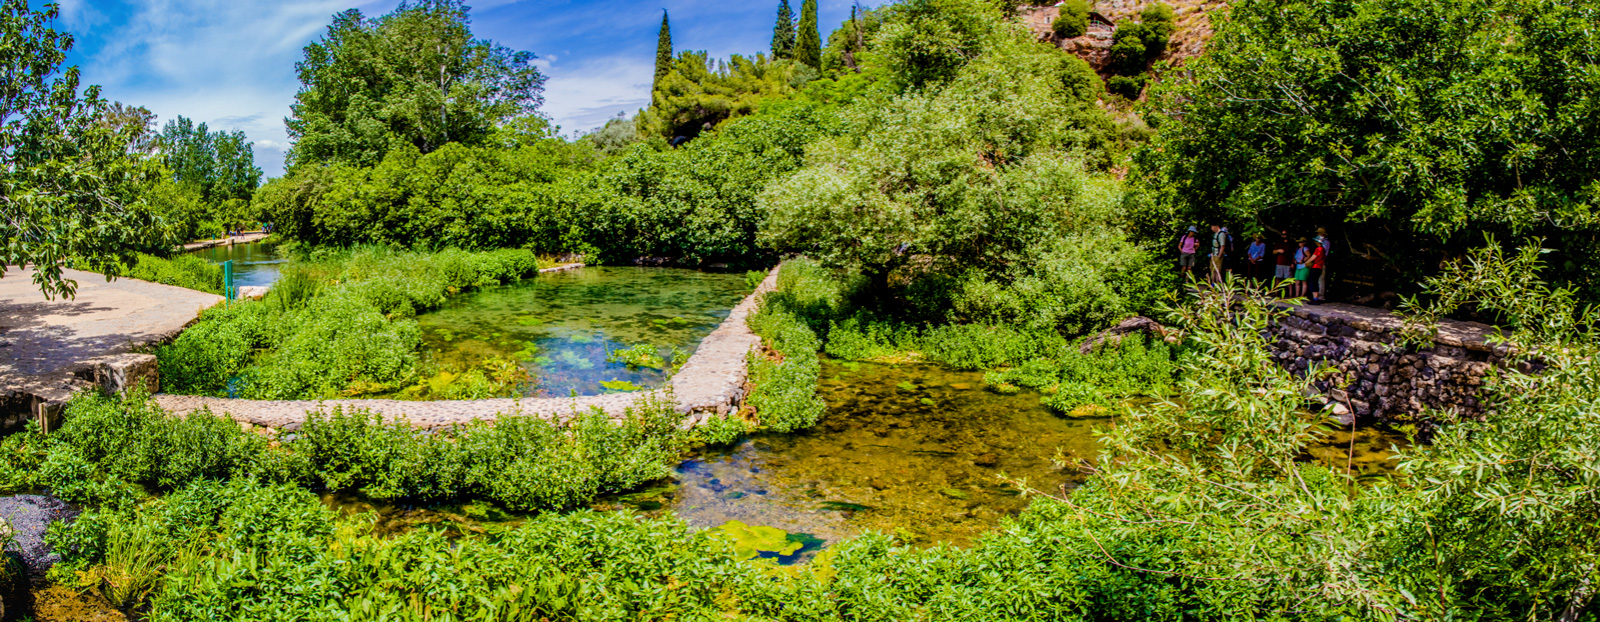 The clear, cold, flowing waters of the Banias Spring comprise the source of the Jordan River and create a lush garden in an otherwise arid climate.